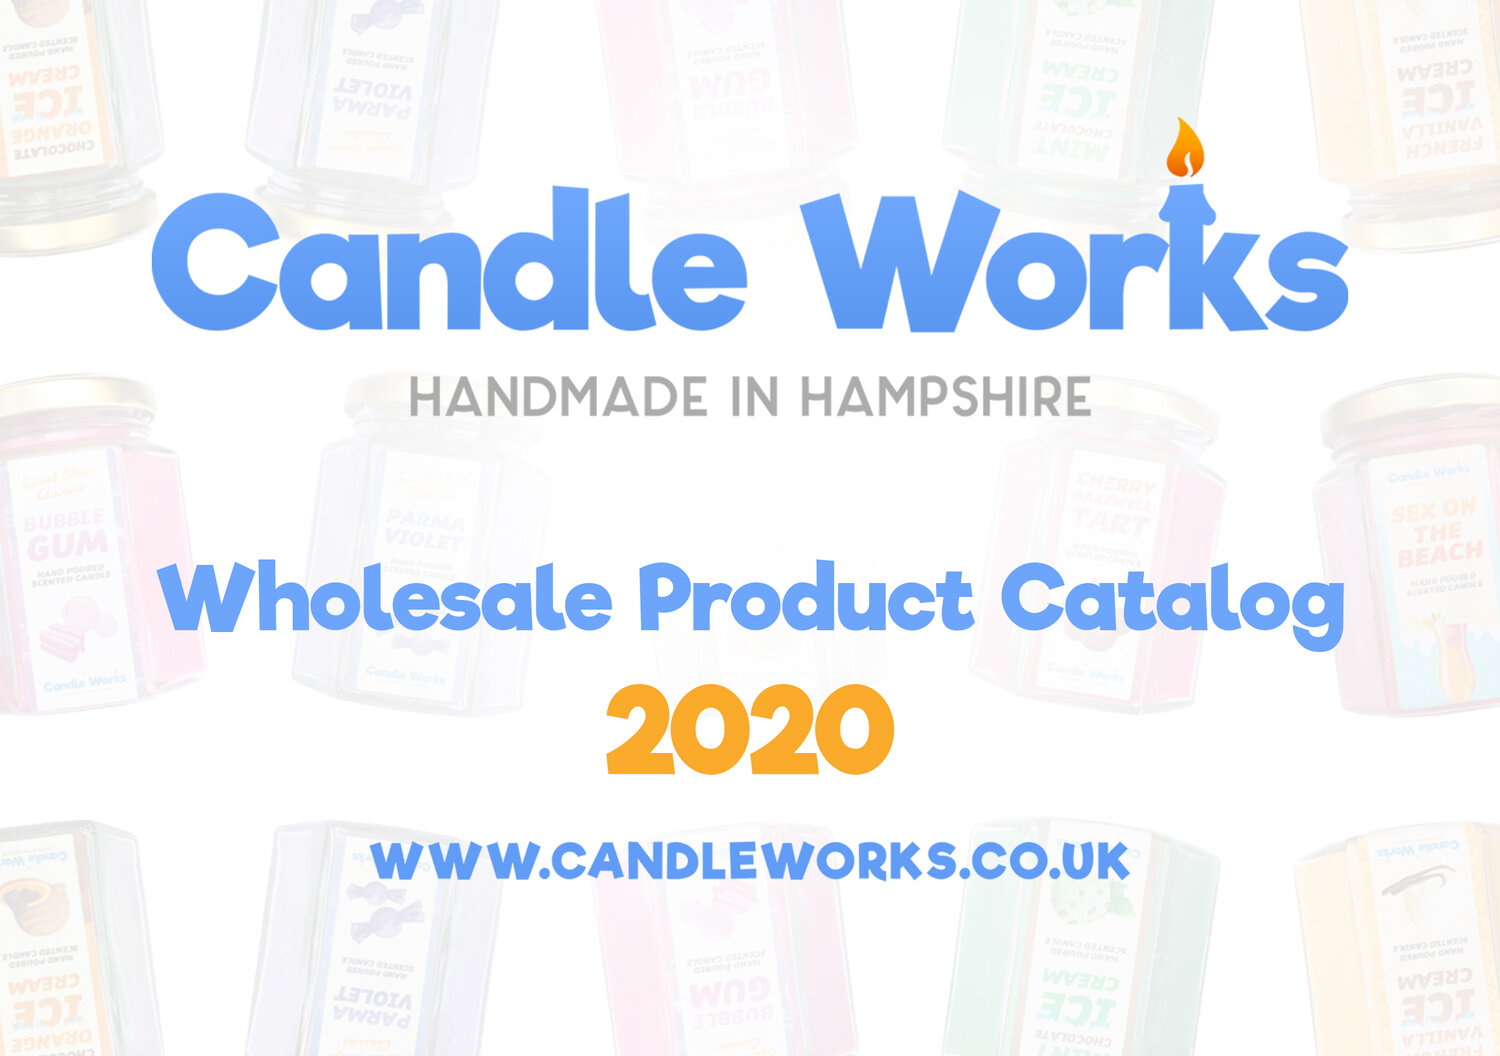 2020 Wholesale Catalog Now Available